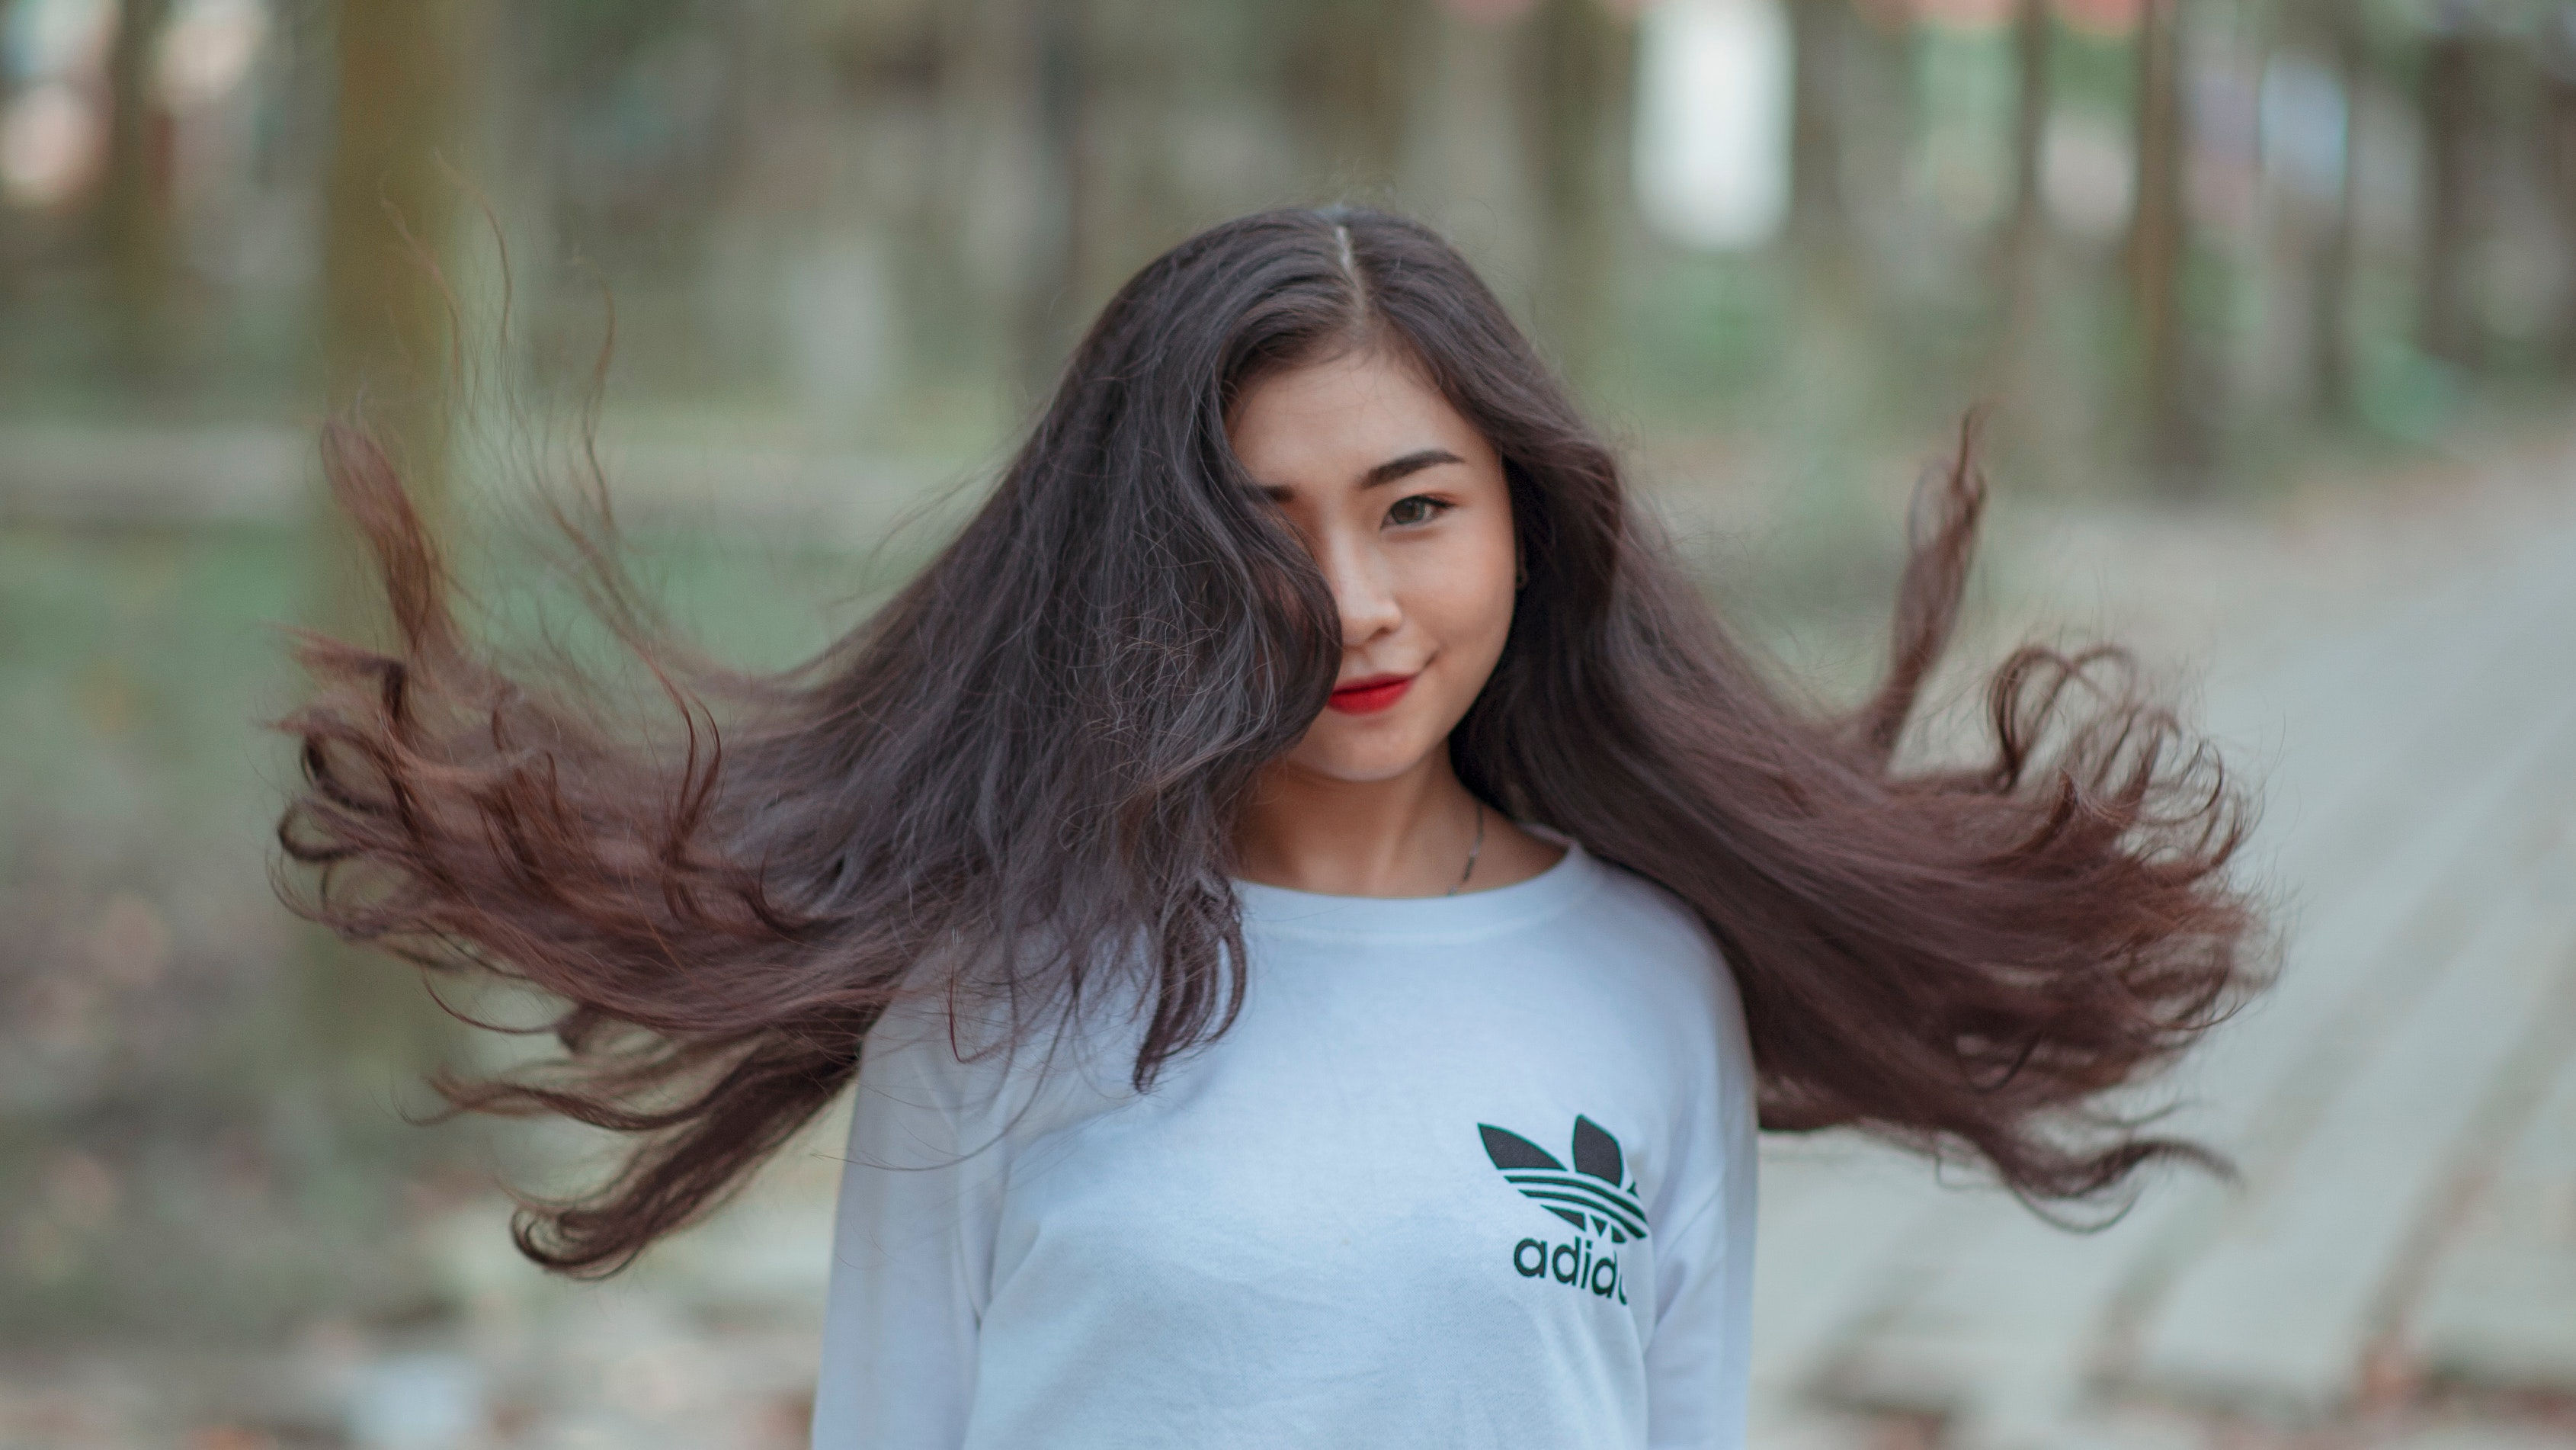 Woman With Long Hair Waving on Air and Wearing White Adidas Shirt, Asian, Outdoors, Woman, Wear, HQ Photo